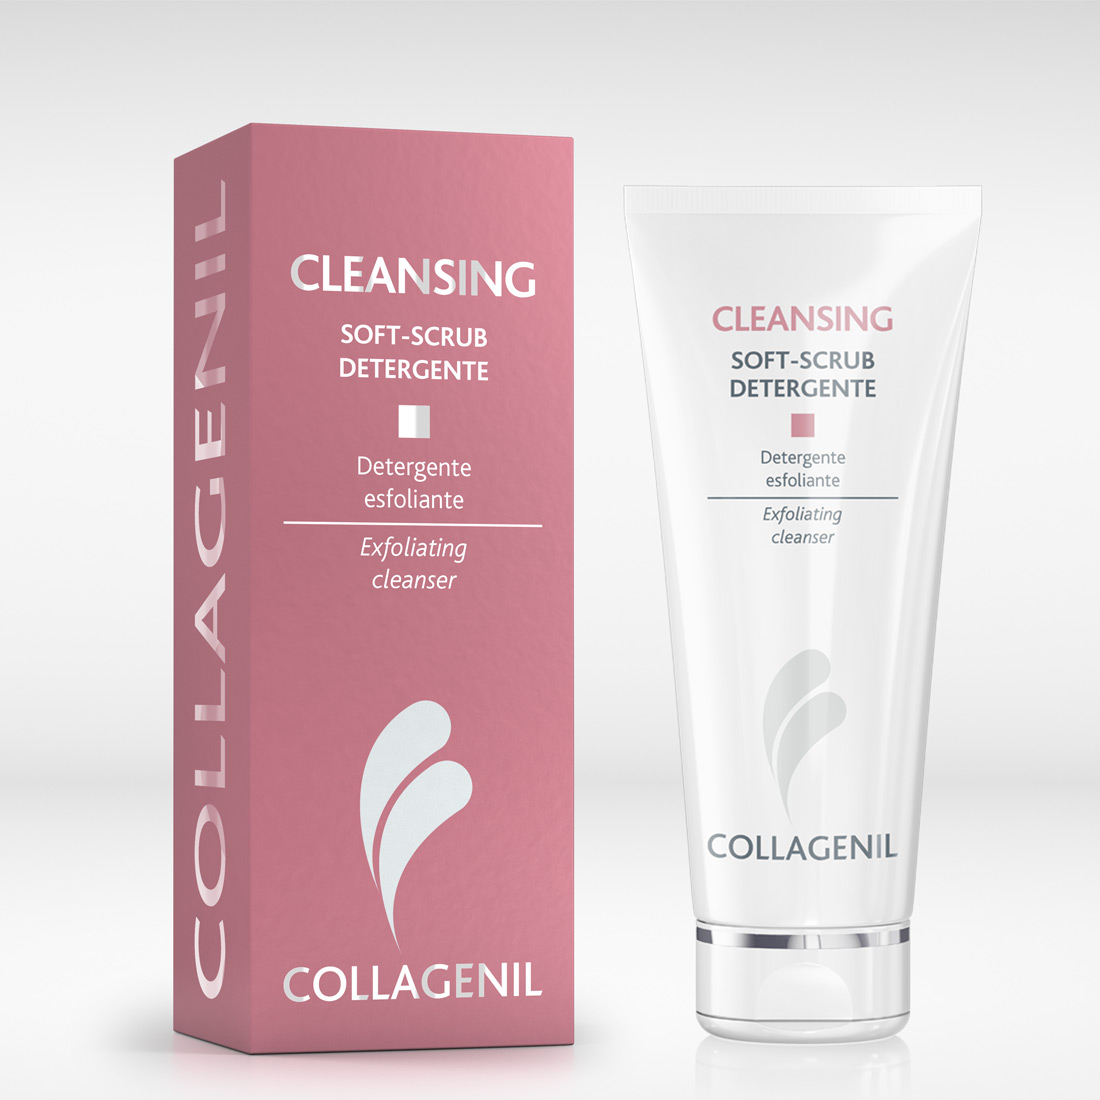 Cleansing Soft-Scrub Detergente Collagenil 200ml